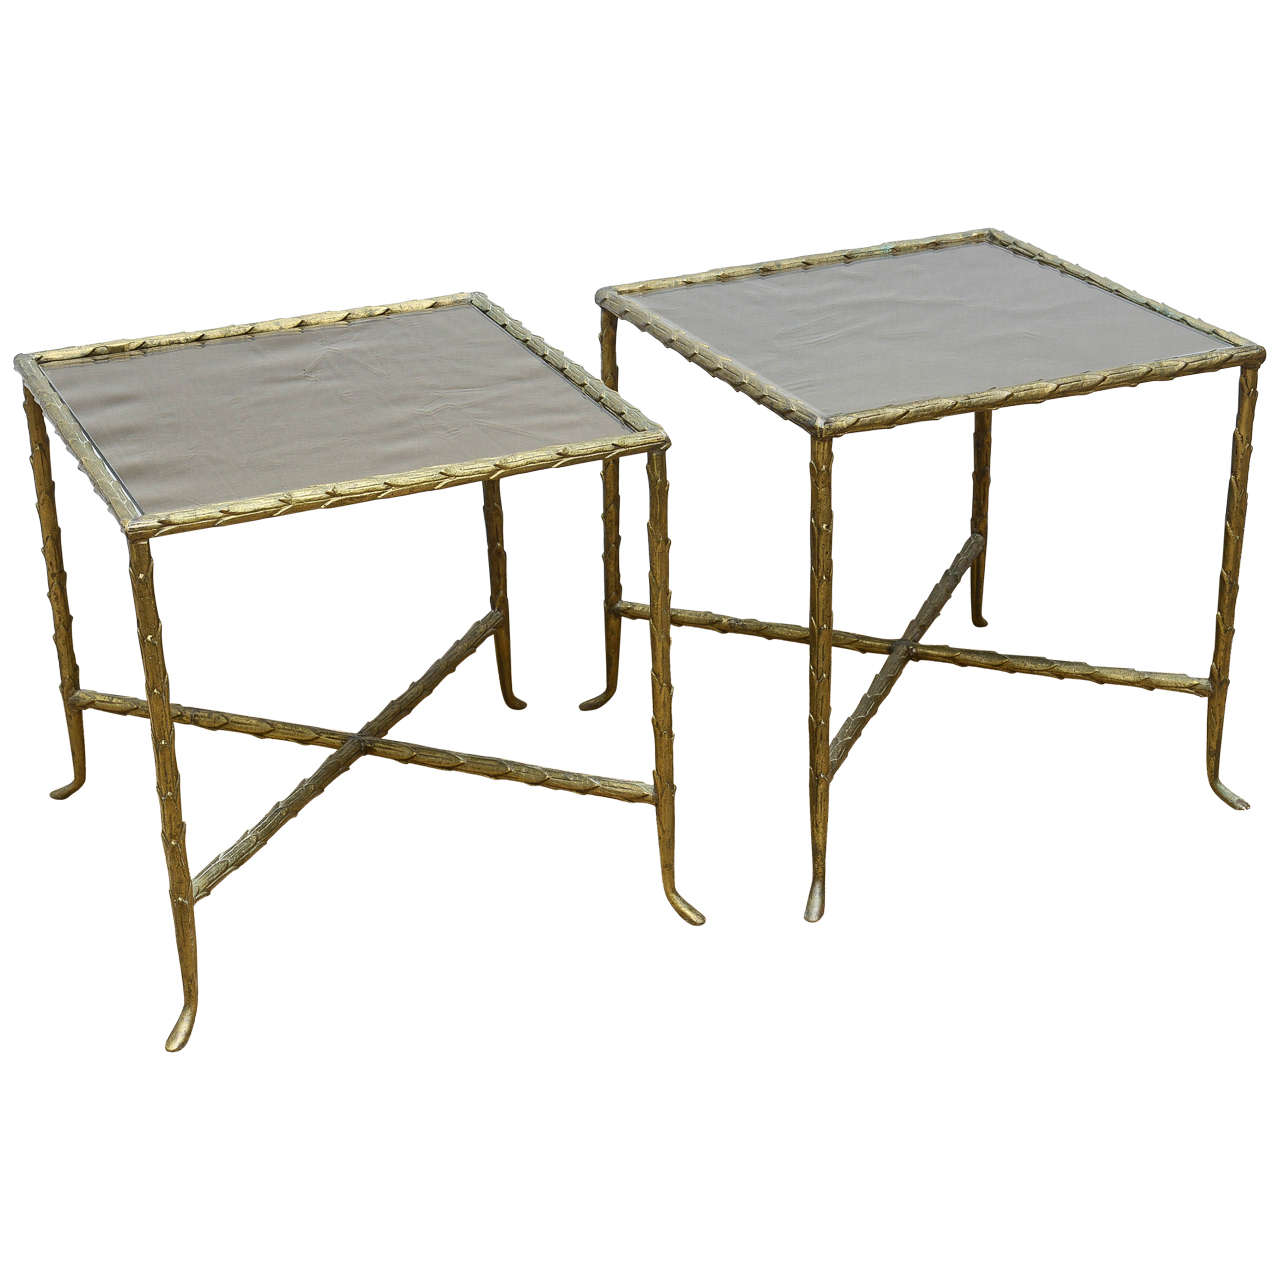 Comfortable Bronze Pair Living Room Side Tables Australia Bagues Style Bronze Bronze Mirrored Mid Century Sidetablessale Django Side Table Sale At Side Table houzz-03 Modern Side Table